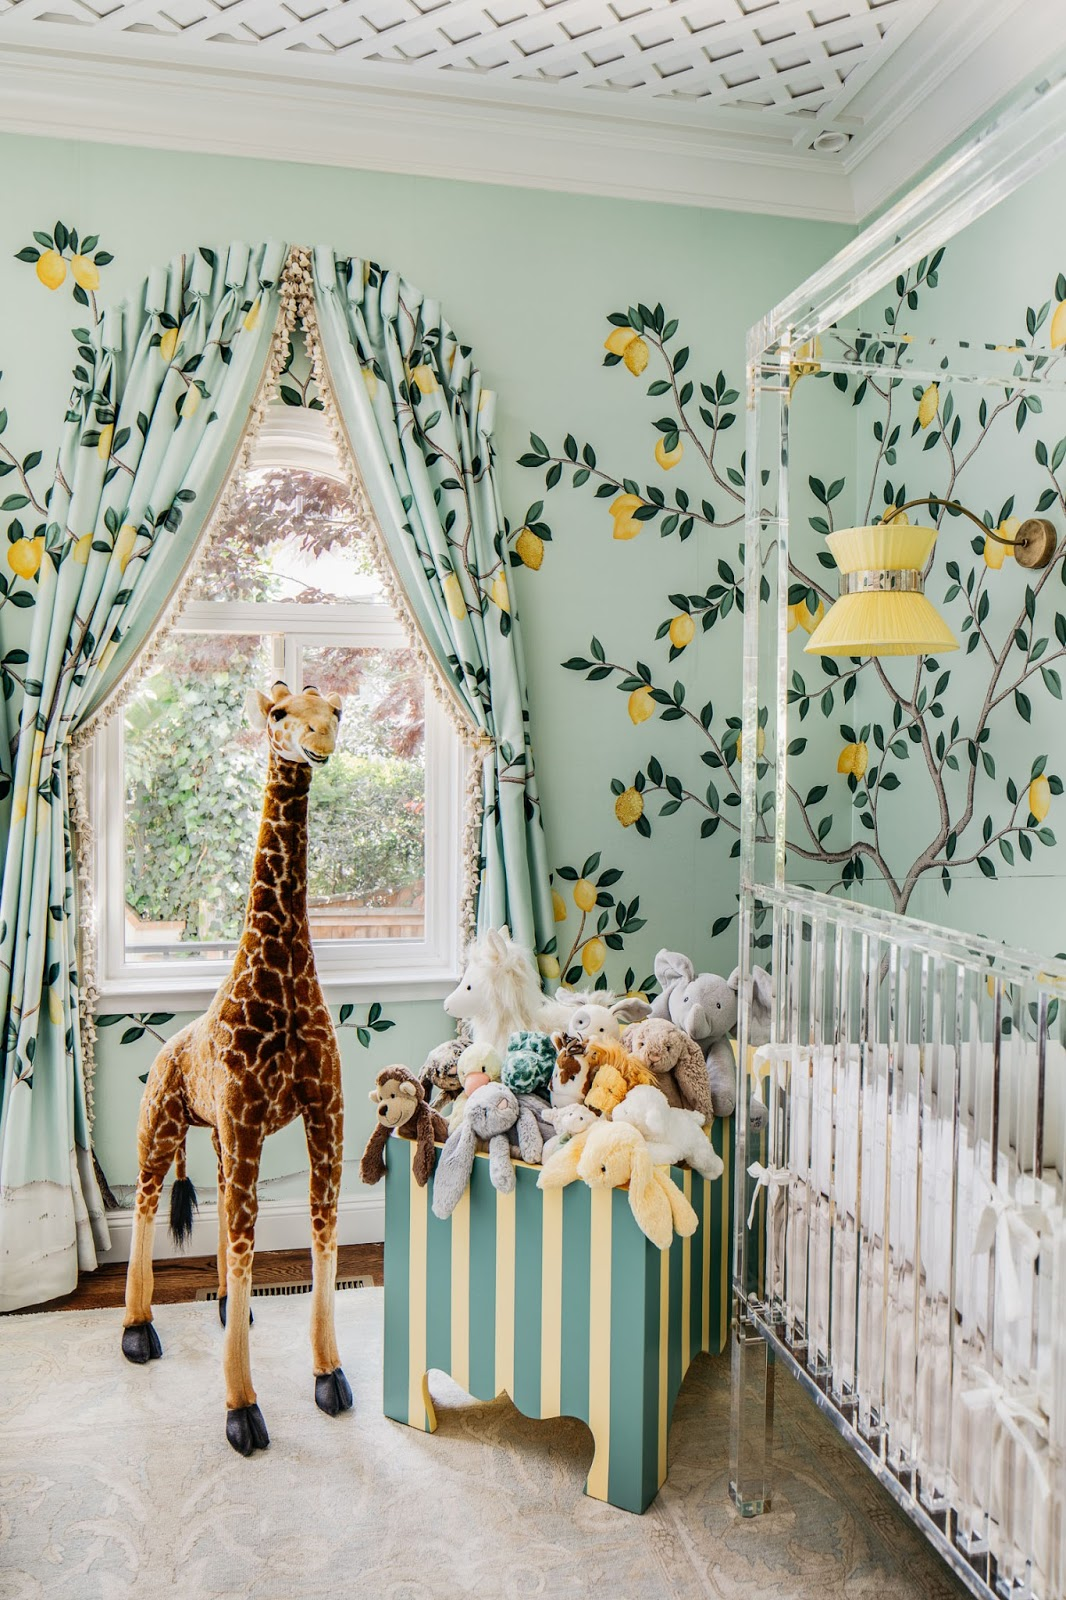 A Magical Nursery By Dina Bandman At The 2018 San Francisco Decorator Showcase